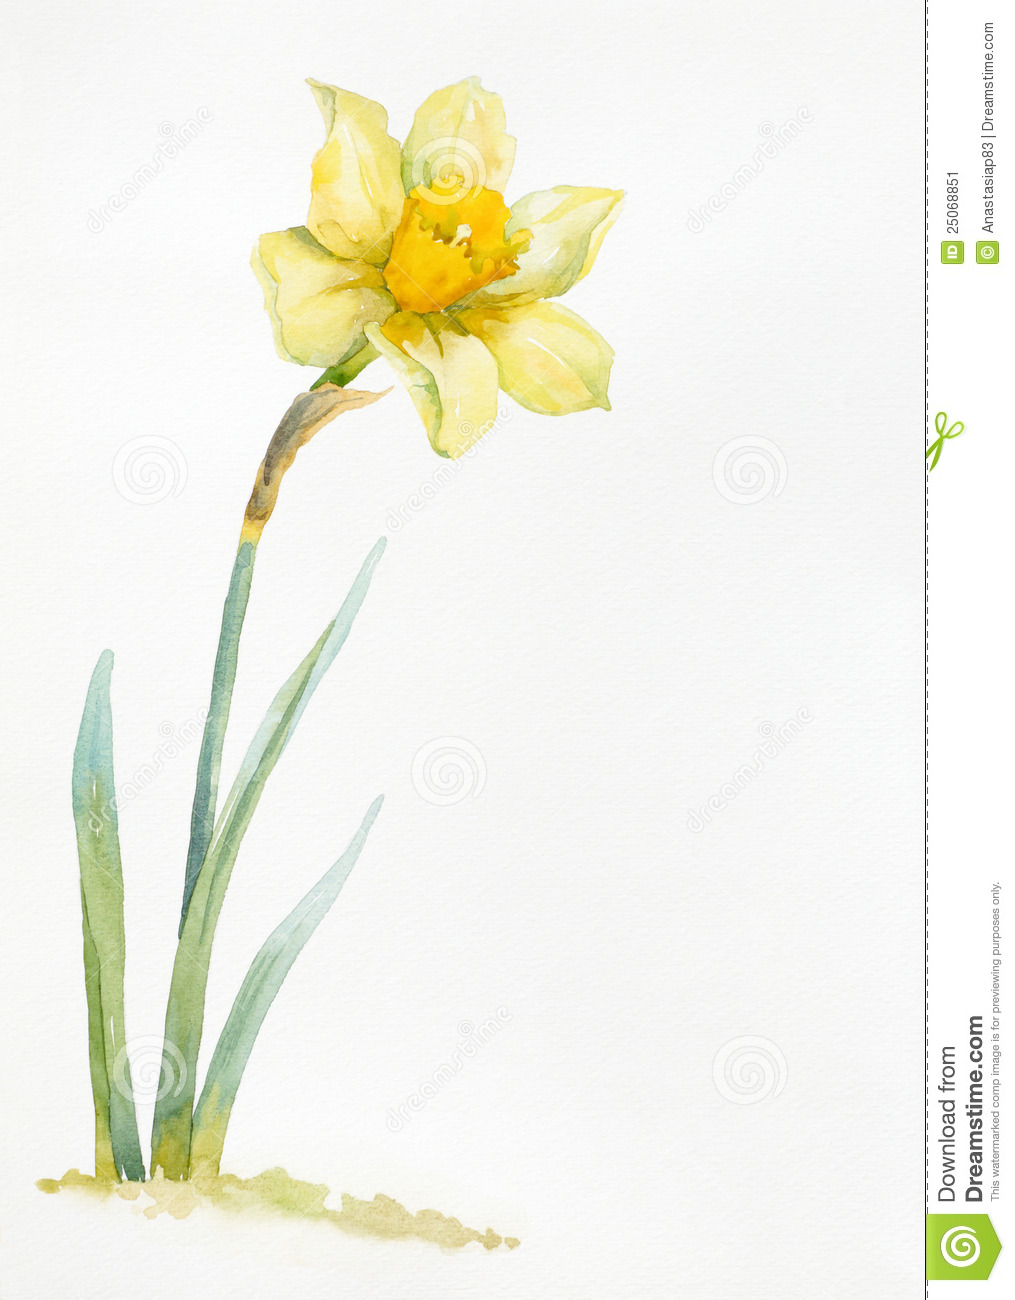 Watercolor Hand Drawn Narcissus Stock Image Image 25068851